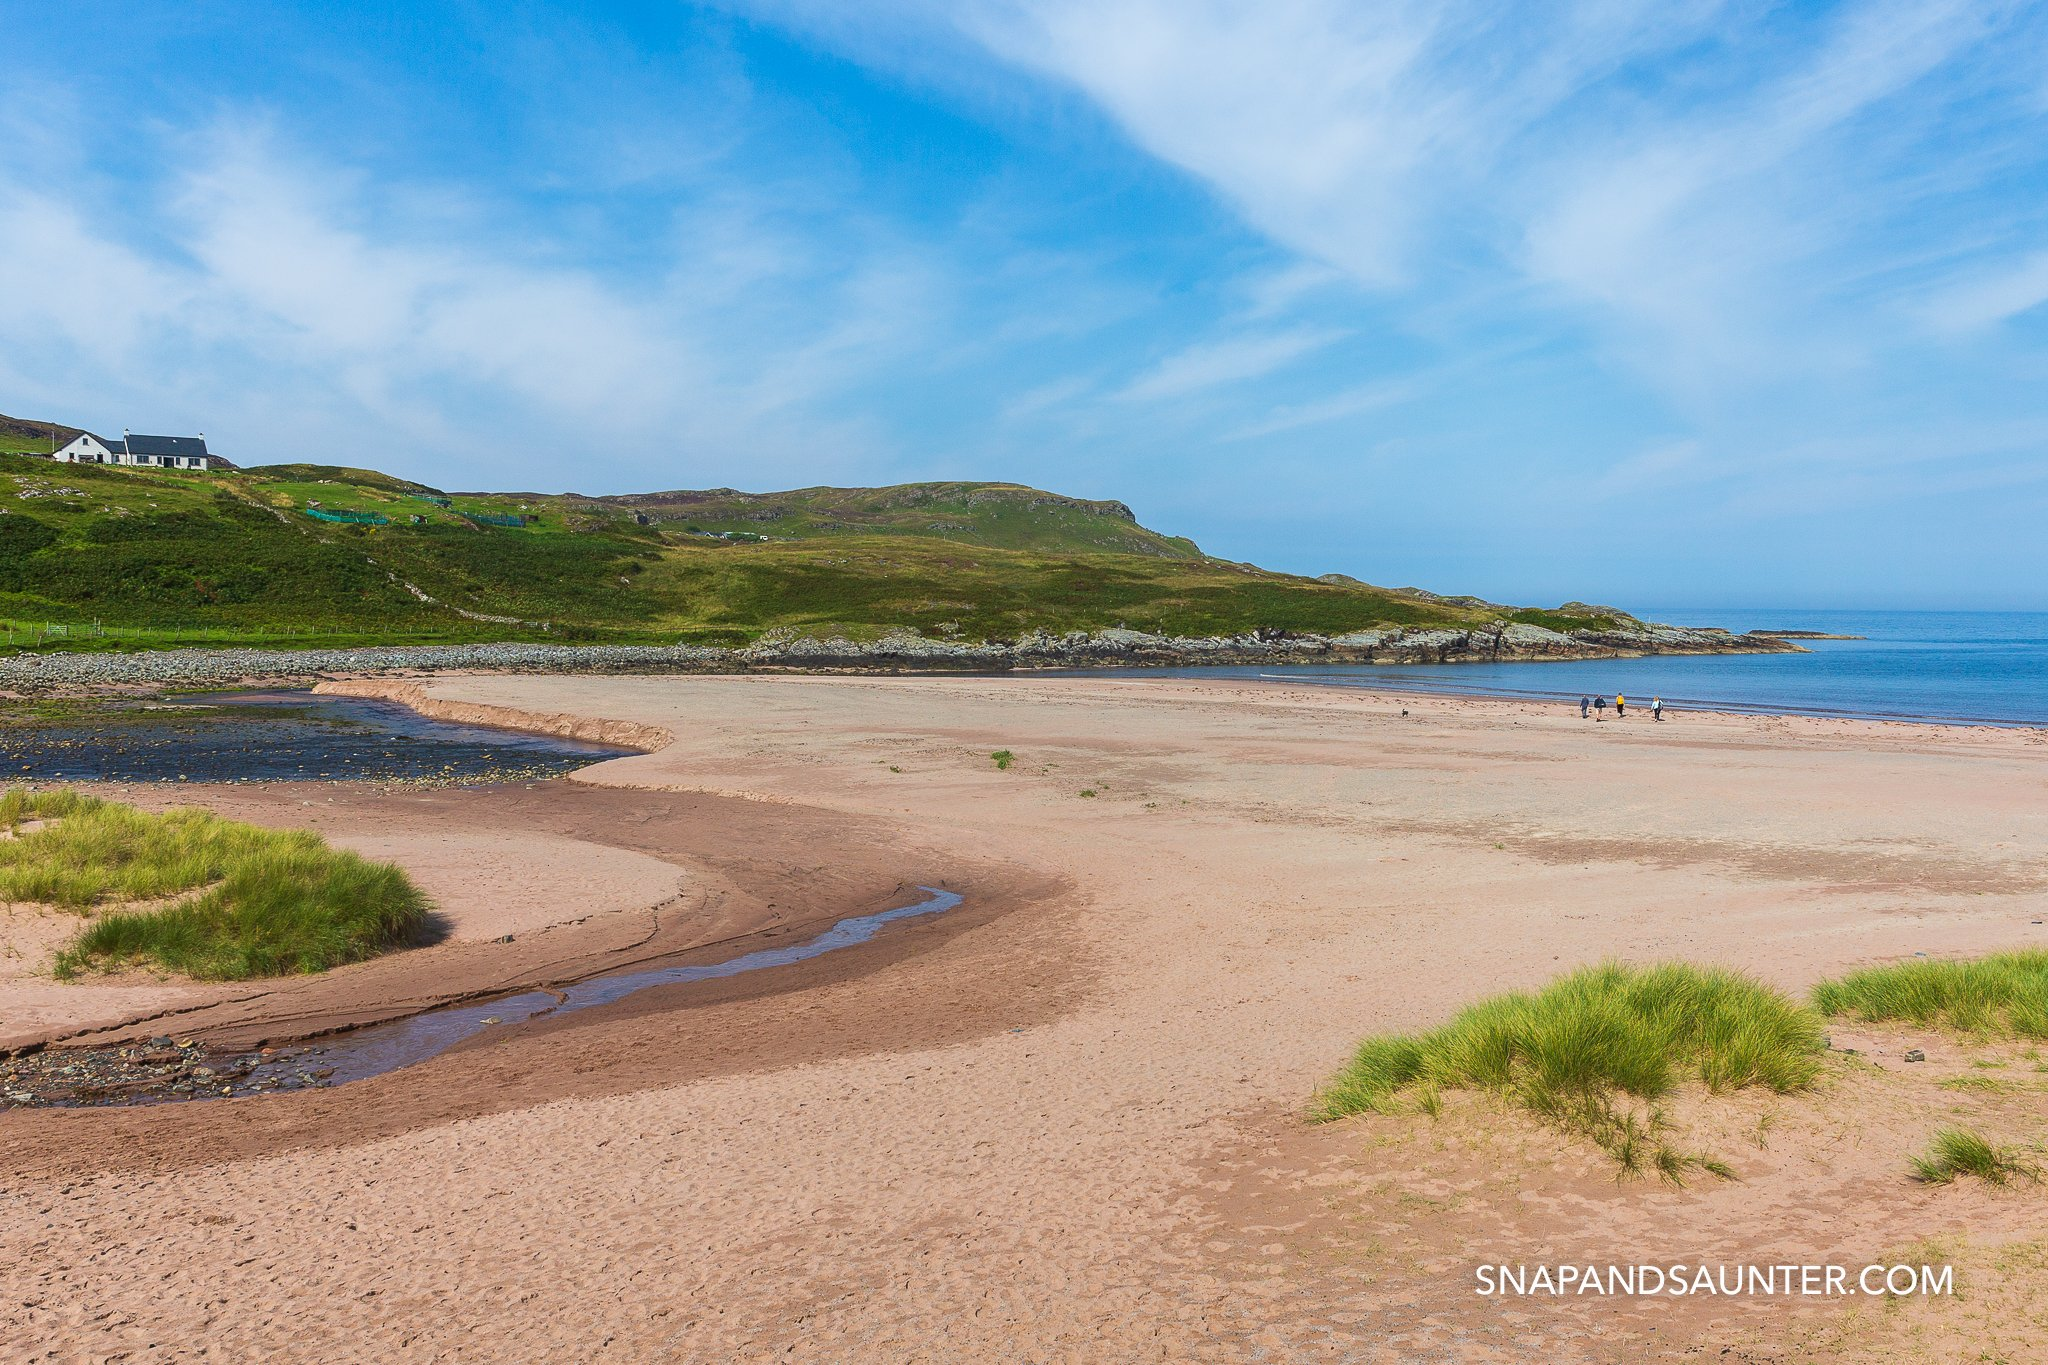 Clashnessie Beach on the North Coast 500 route